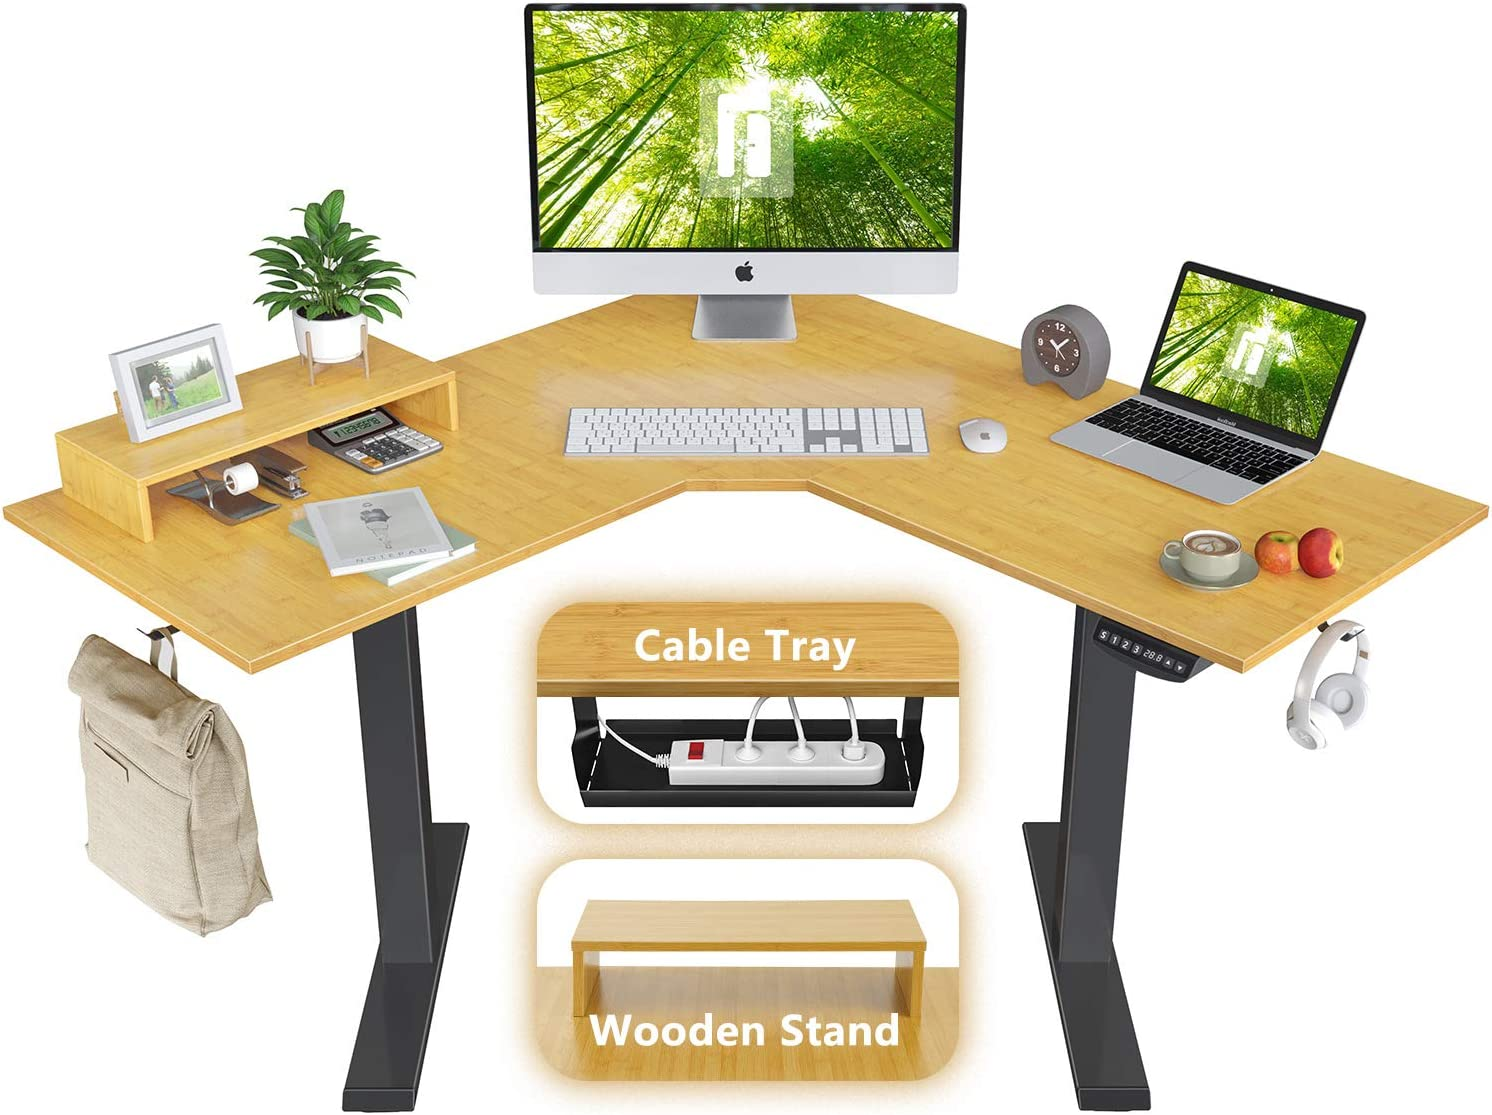 FEZIBO L-Shaped Electric Standing Desk, 48 Inches Height Adjustable Corner Desk, Full Sit Stand Home Office Table with Splice Board, Black Frame/Bamboo Top